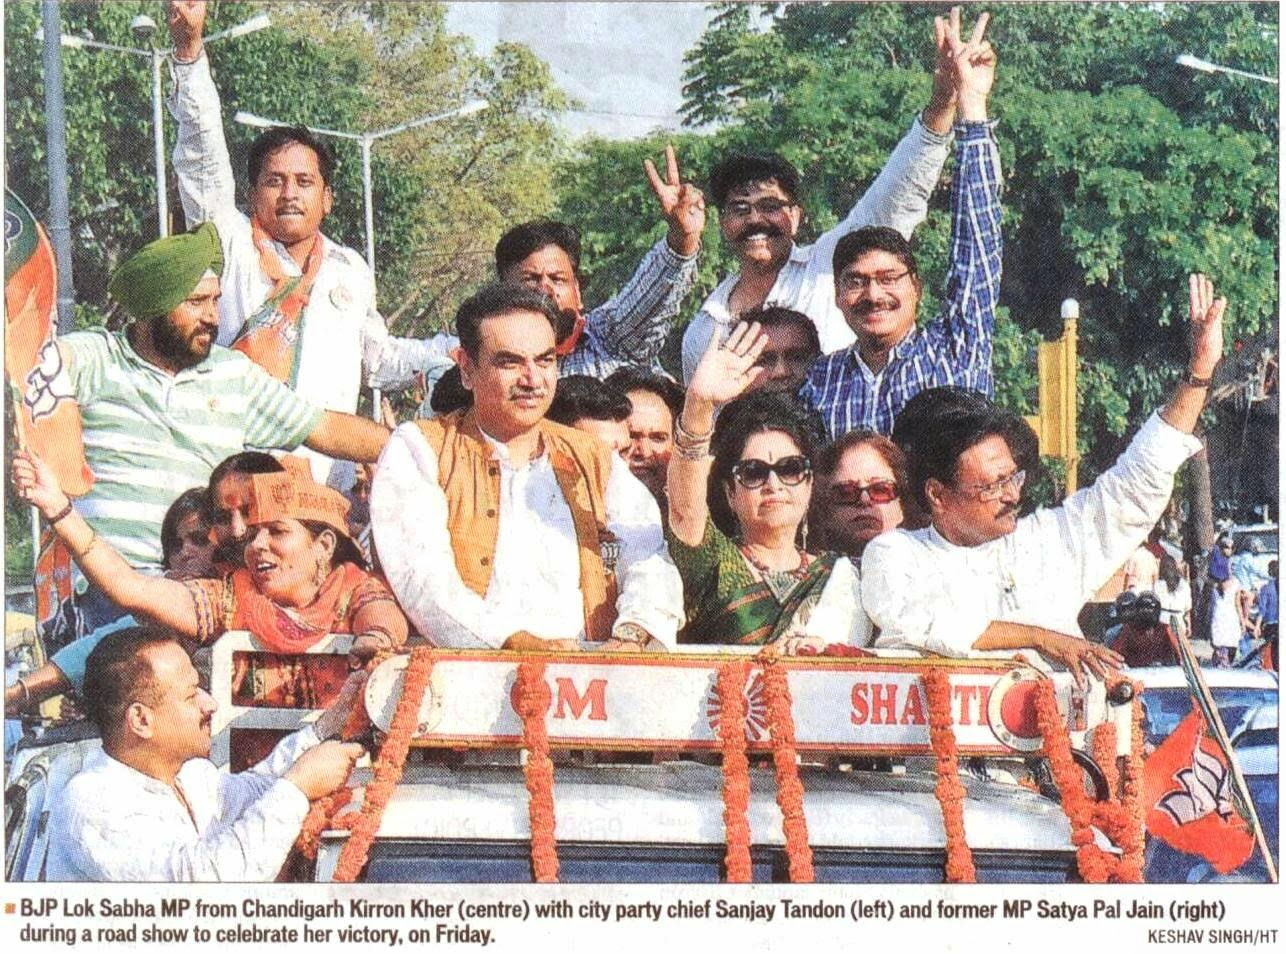 BJP Lok Sabha MP from Chandigarh Kirron Kher with former MP Satya Pal Jain during a road show to celebrate her victory on Friday